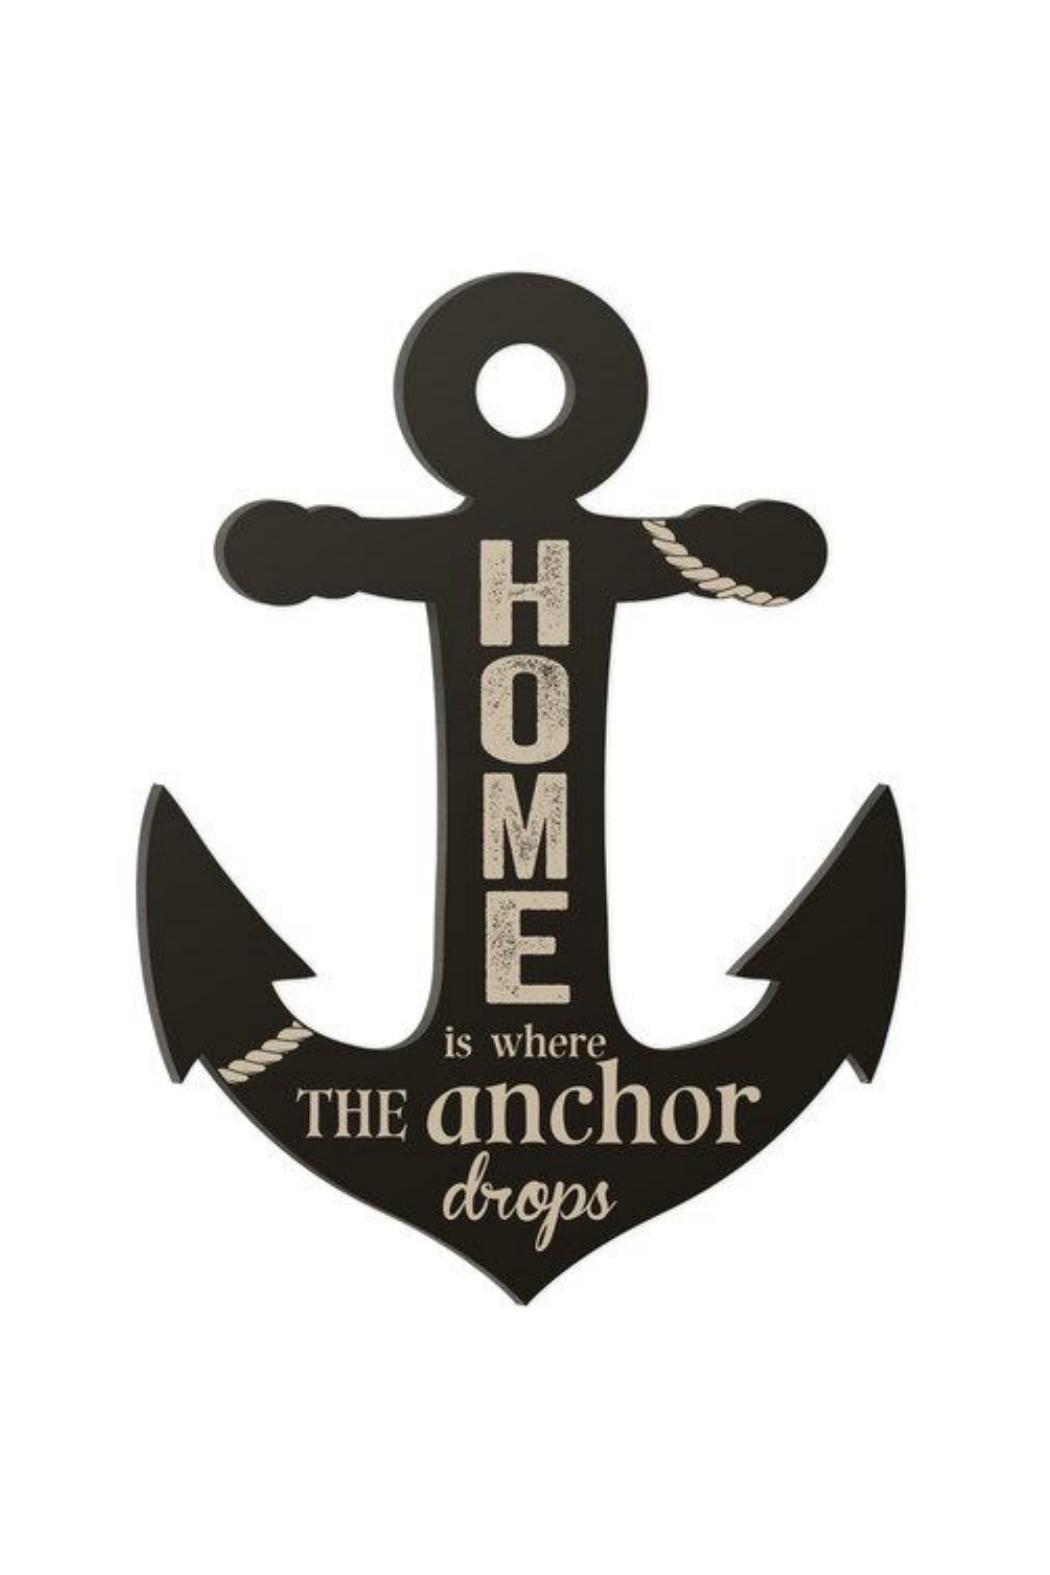 P Graham Dunn Anchor Word Art From South Carolina By Primitive Home